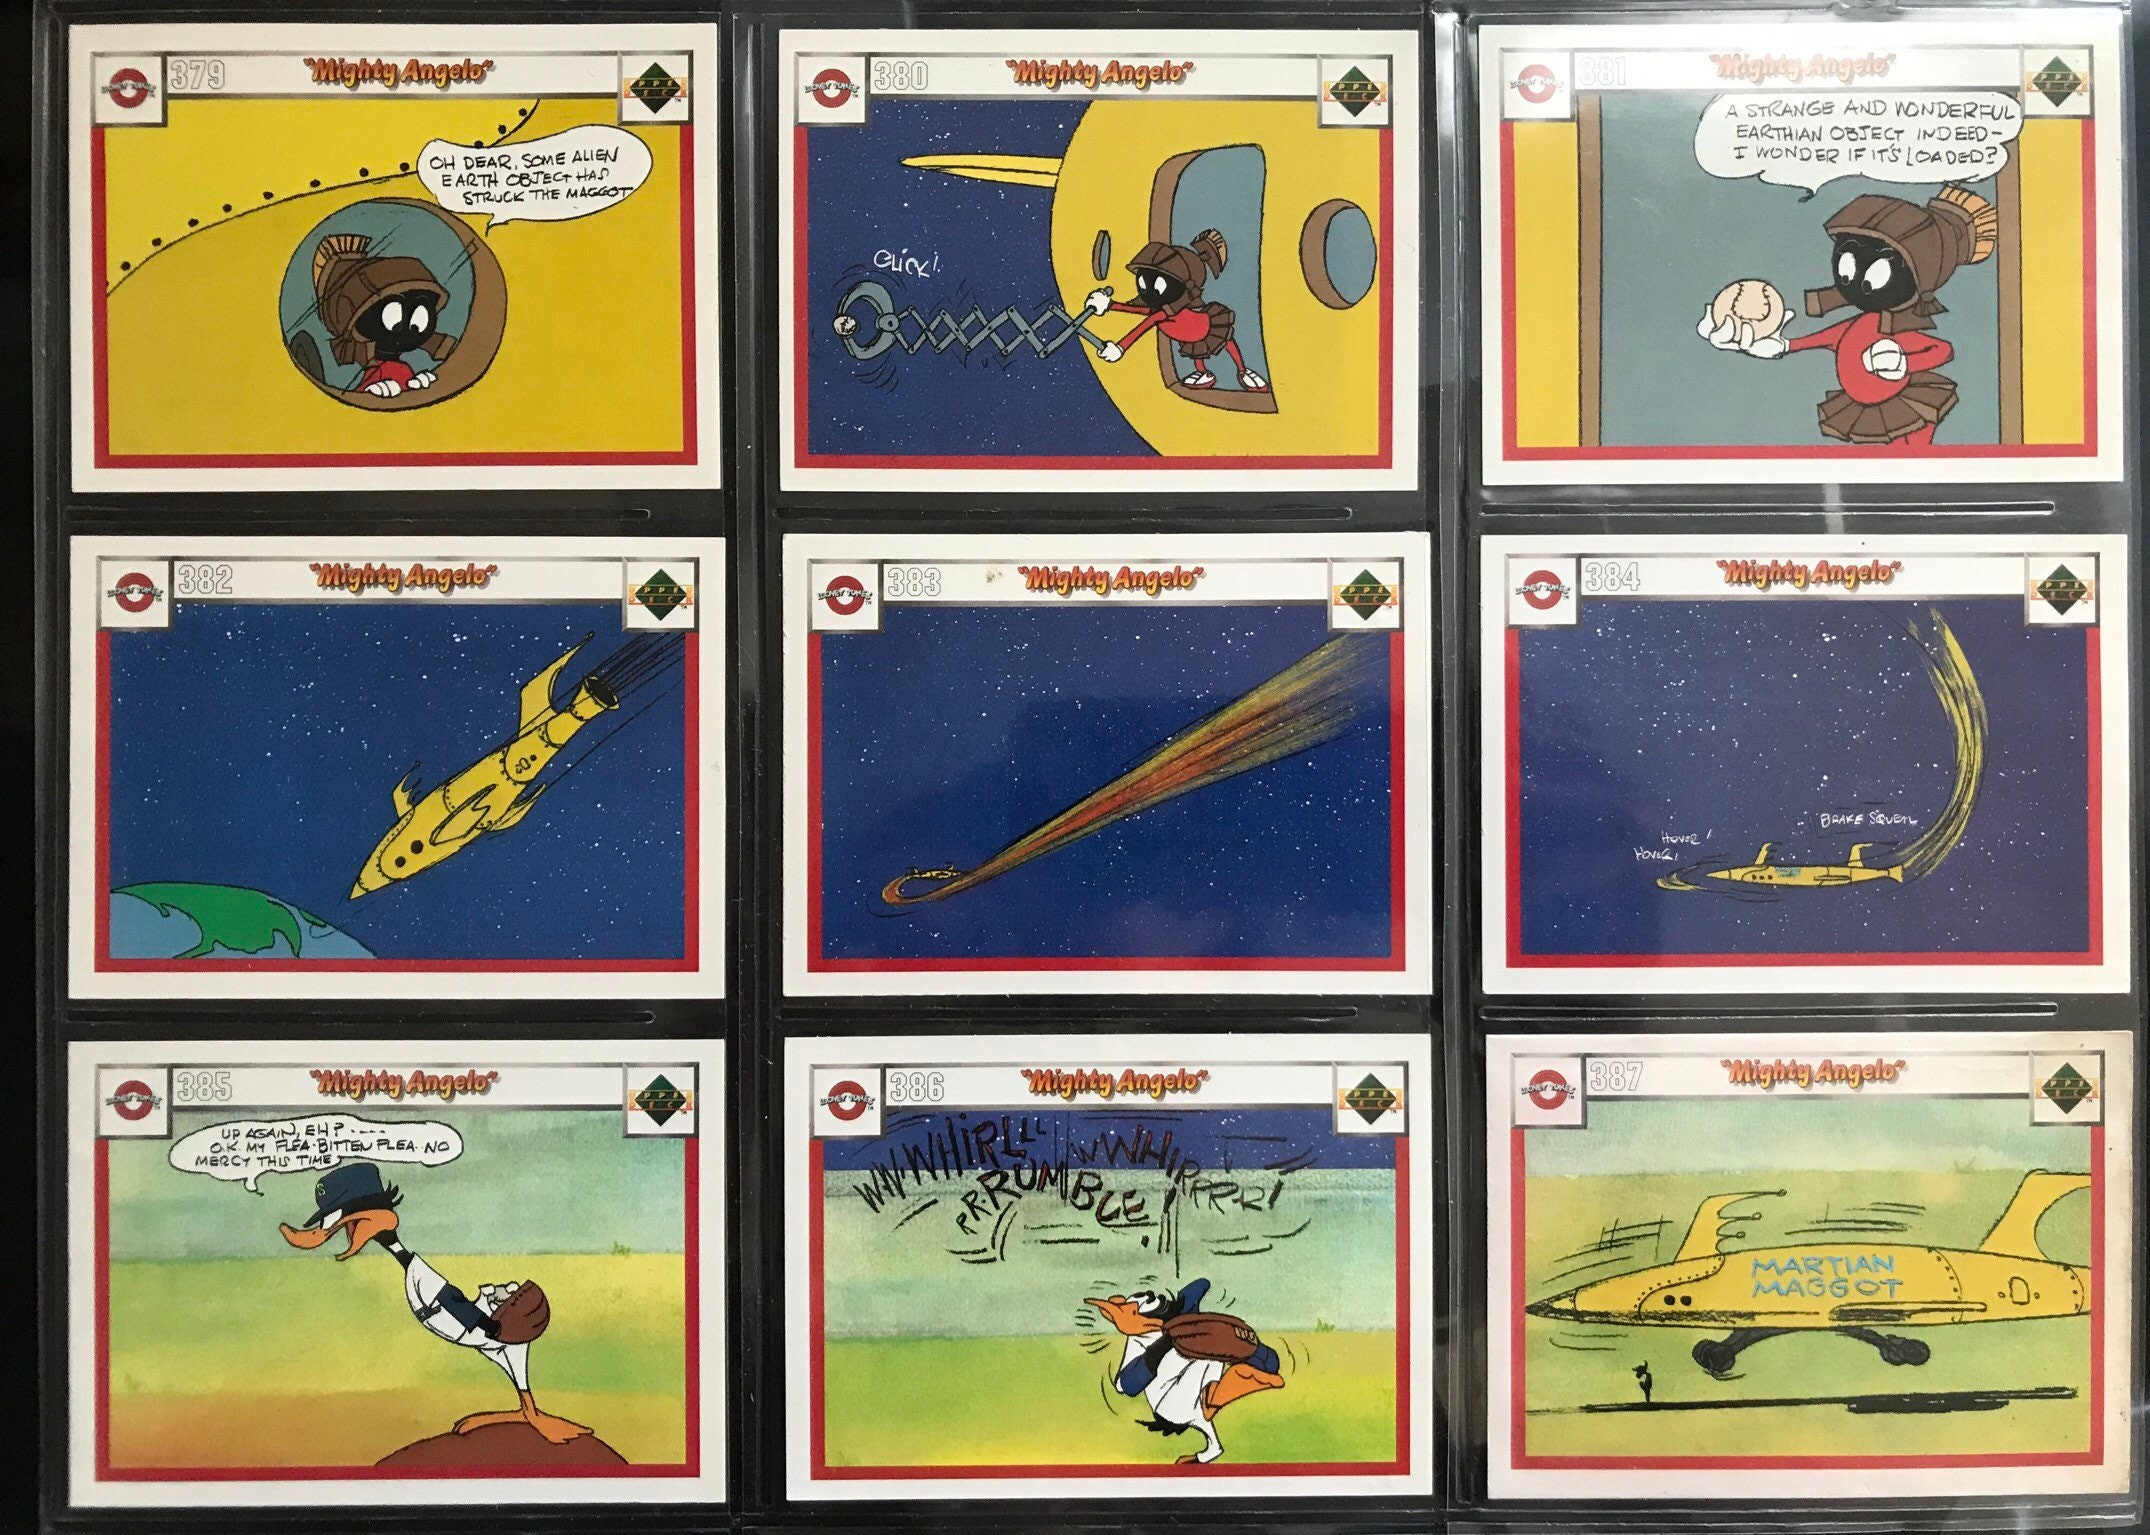 Vintage The Upper Deck Company Warner Brothers Looney Tunes Mighthy Angelo Story Baseball Cards